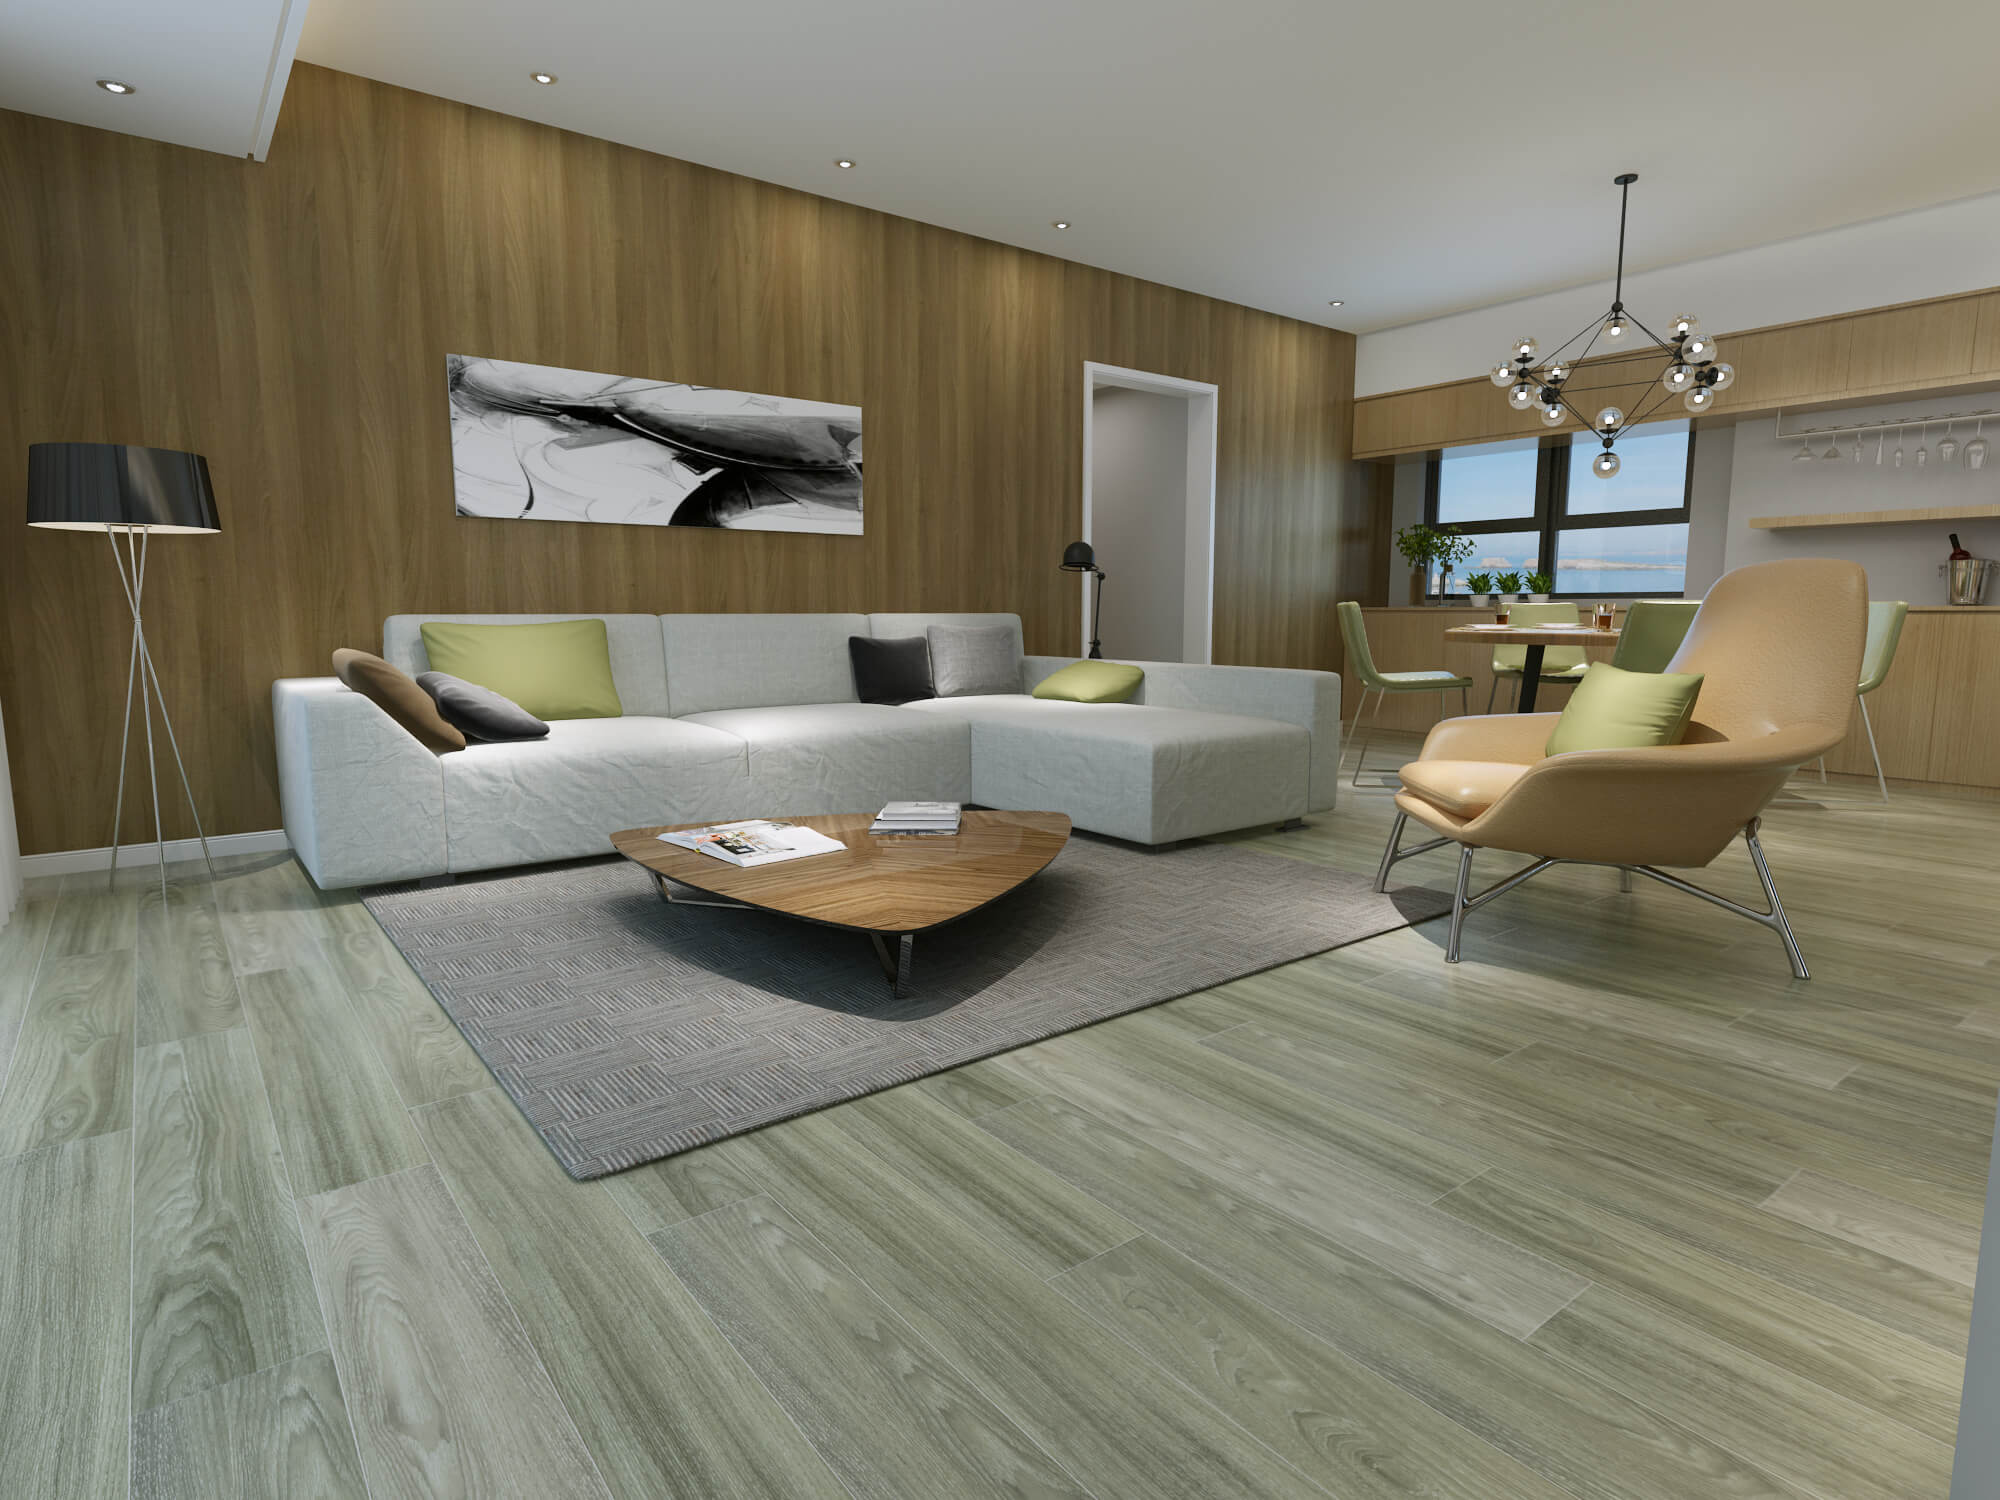 Impervia Commercial Ocean Oak Luxury Vinyl Flooring